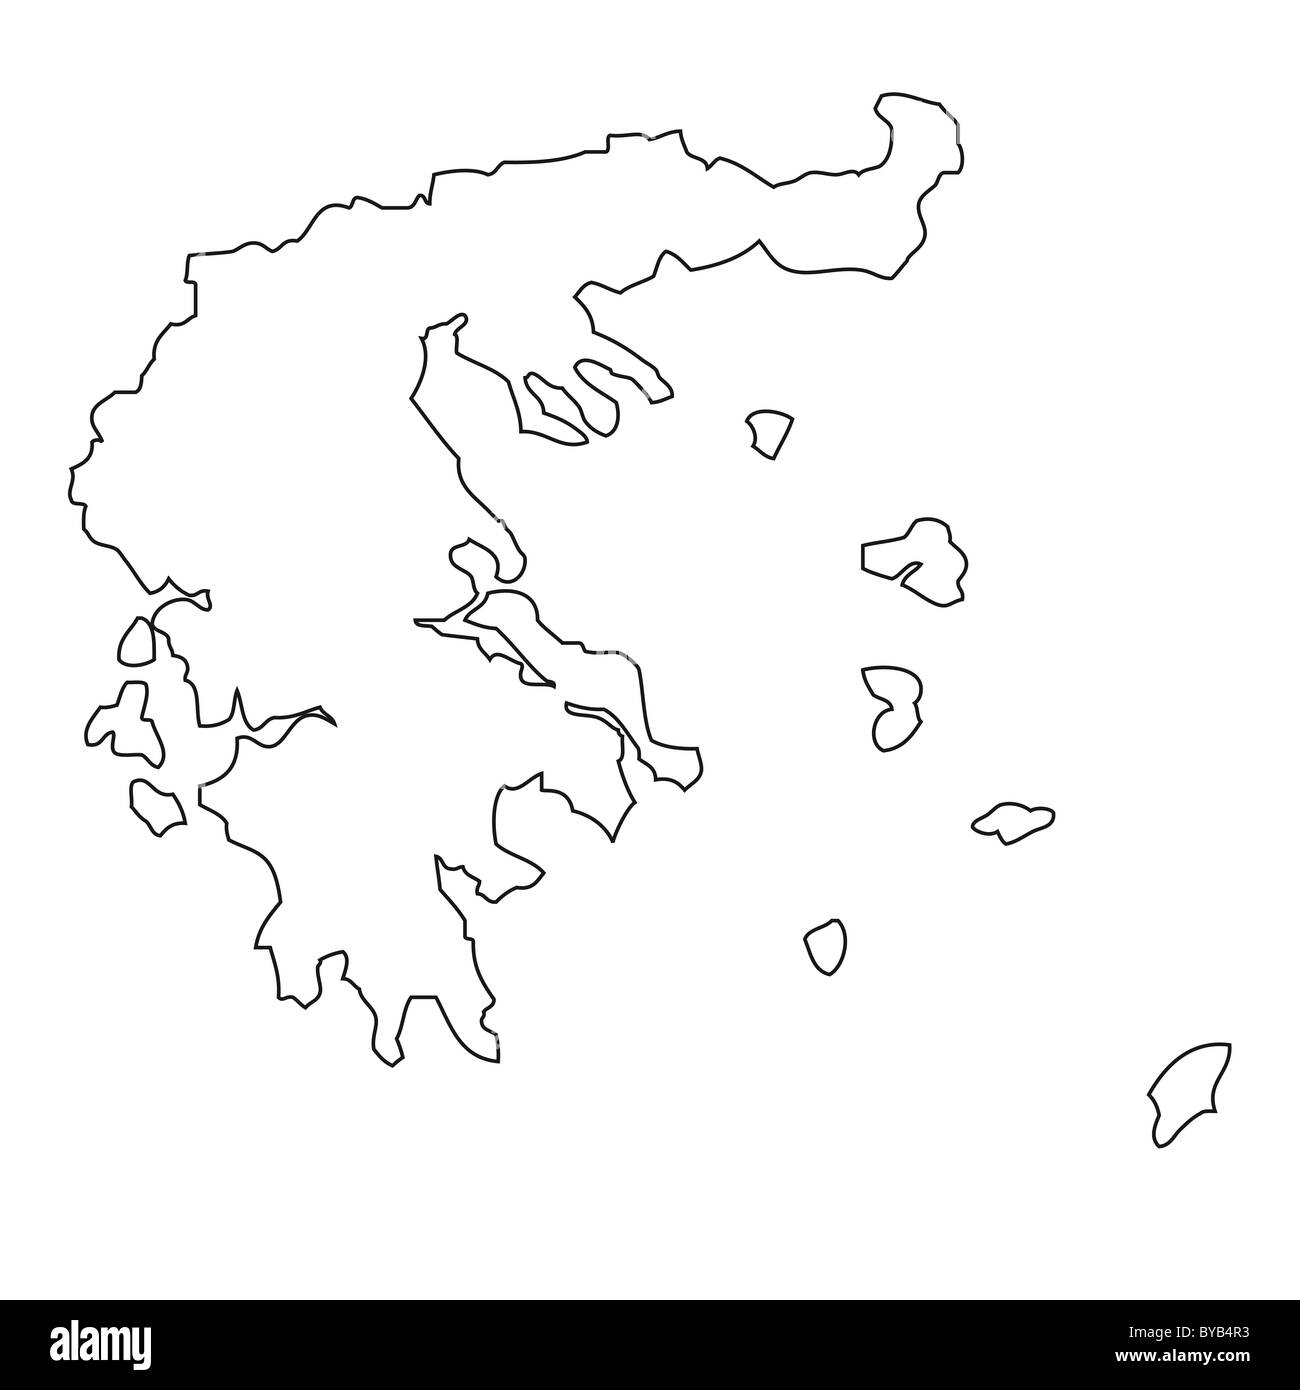 Outline Map Of Greece Stock Photo Royalty Free Image - Outline map of